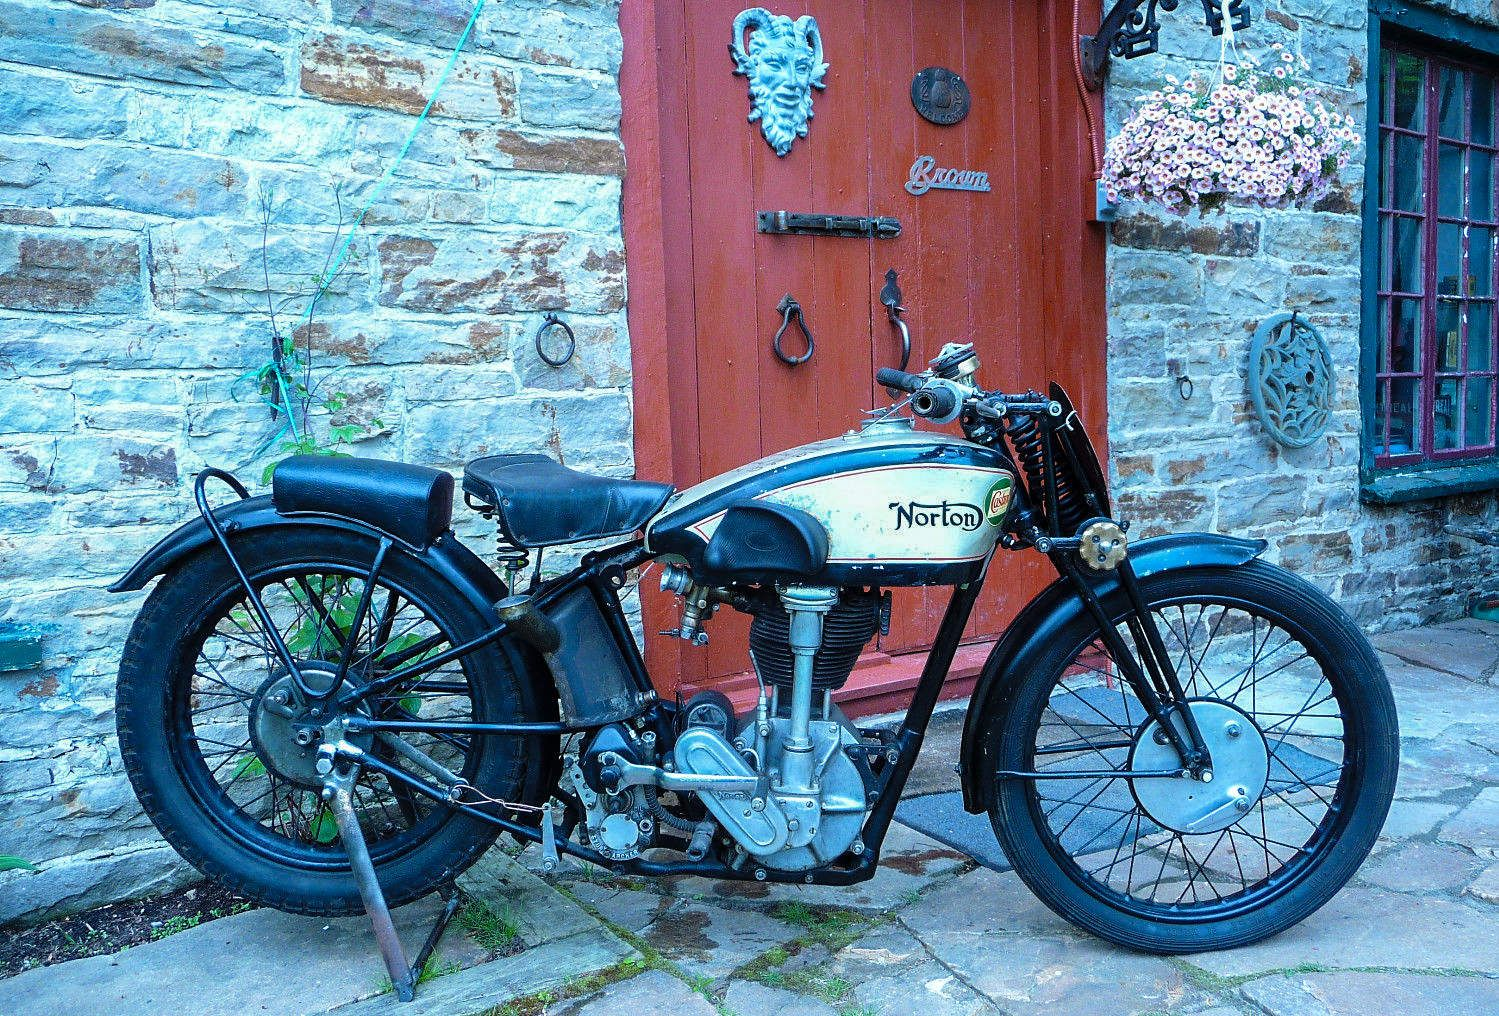 The Best Vintage Motorcycles For Sale On Ebay 12 30 14 Vintage Motorcycles For Sale Vintage Motorcycles Motorcycle